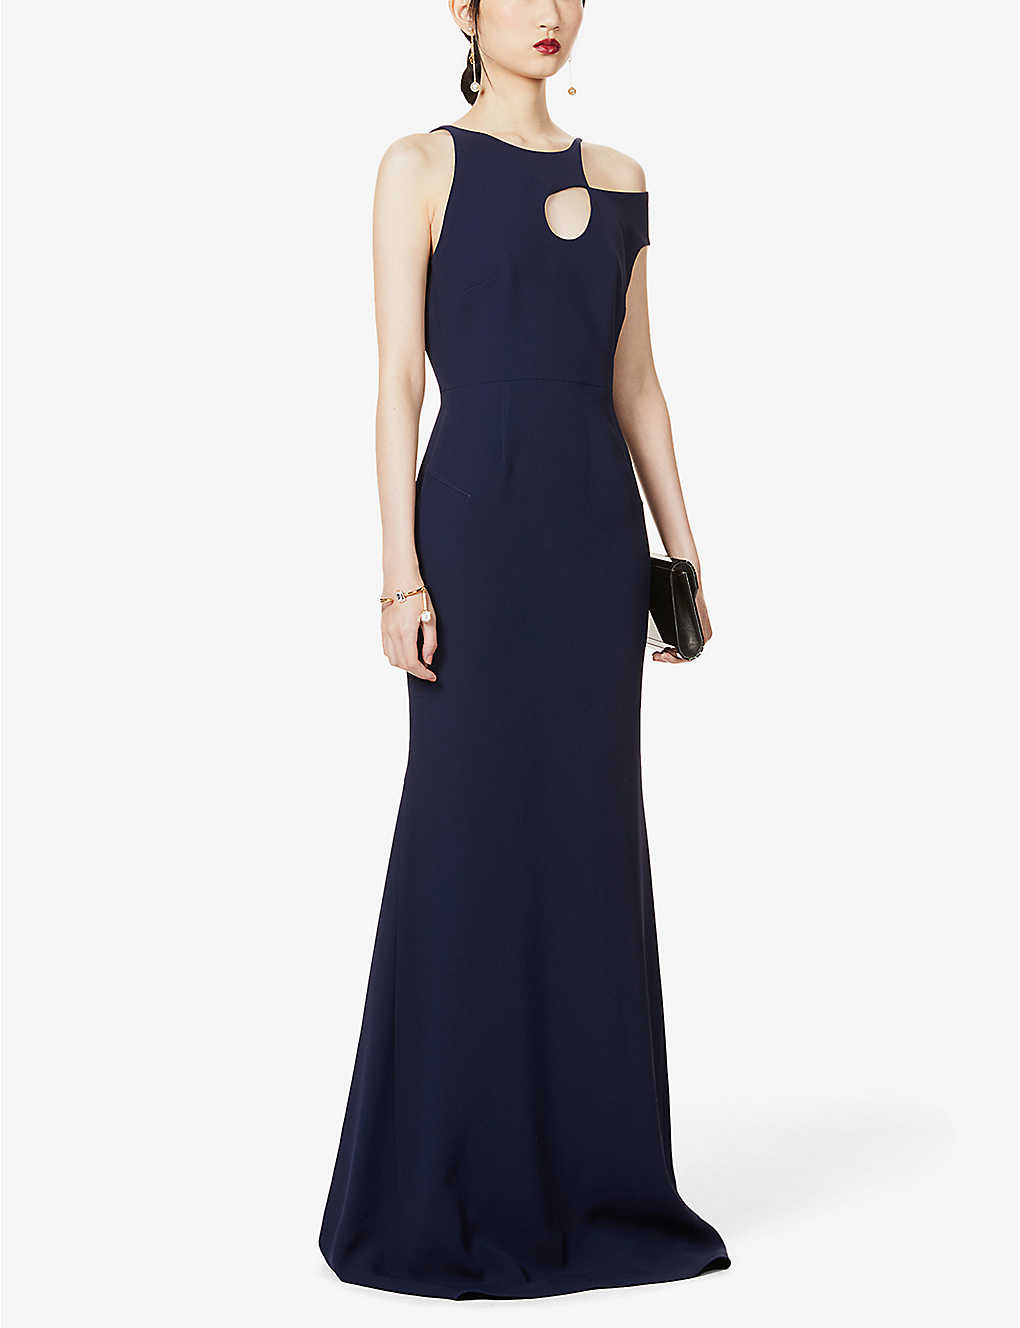 ROLAND MOURET: Galata cut-out crepe gown